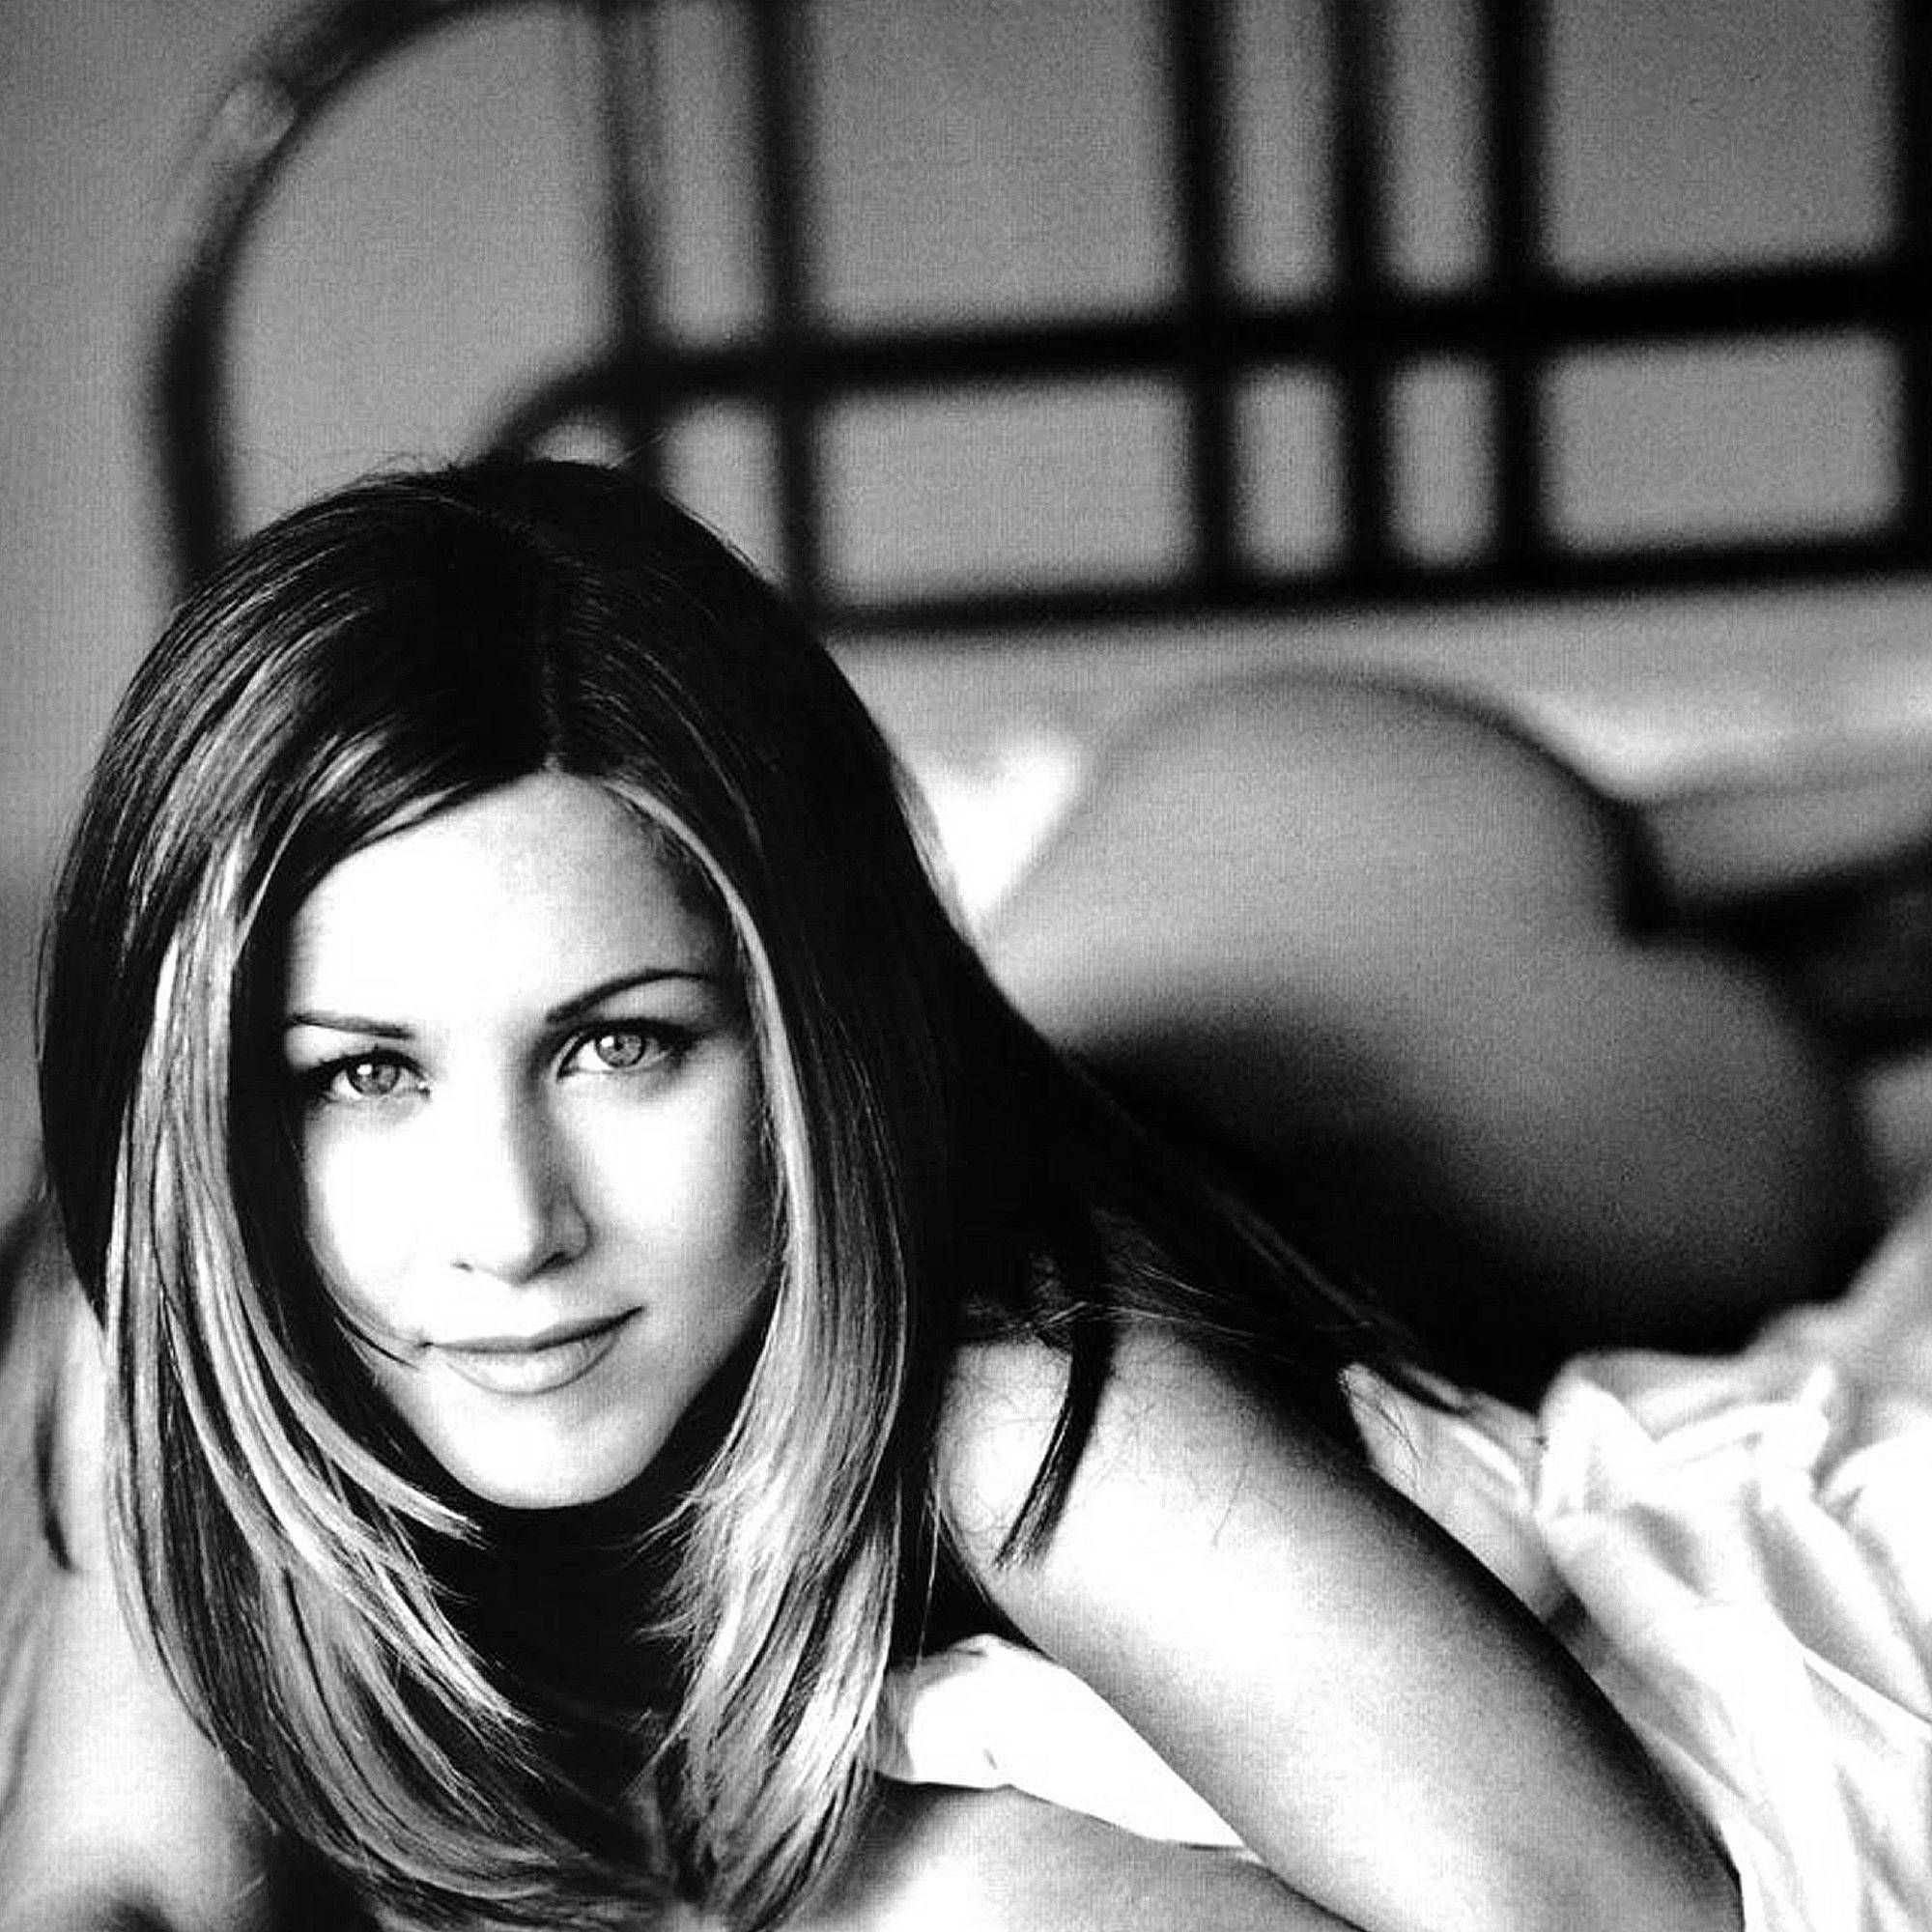 How to get jennifer aniston's sexy tan